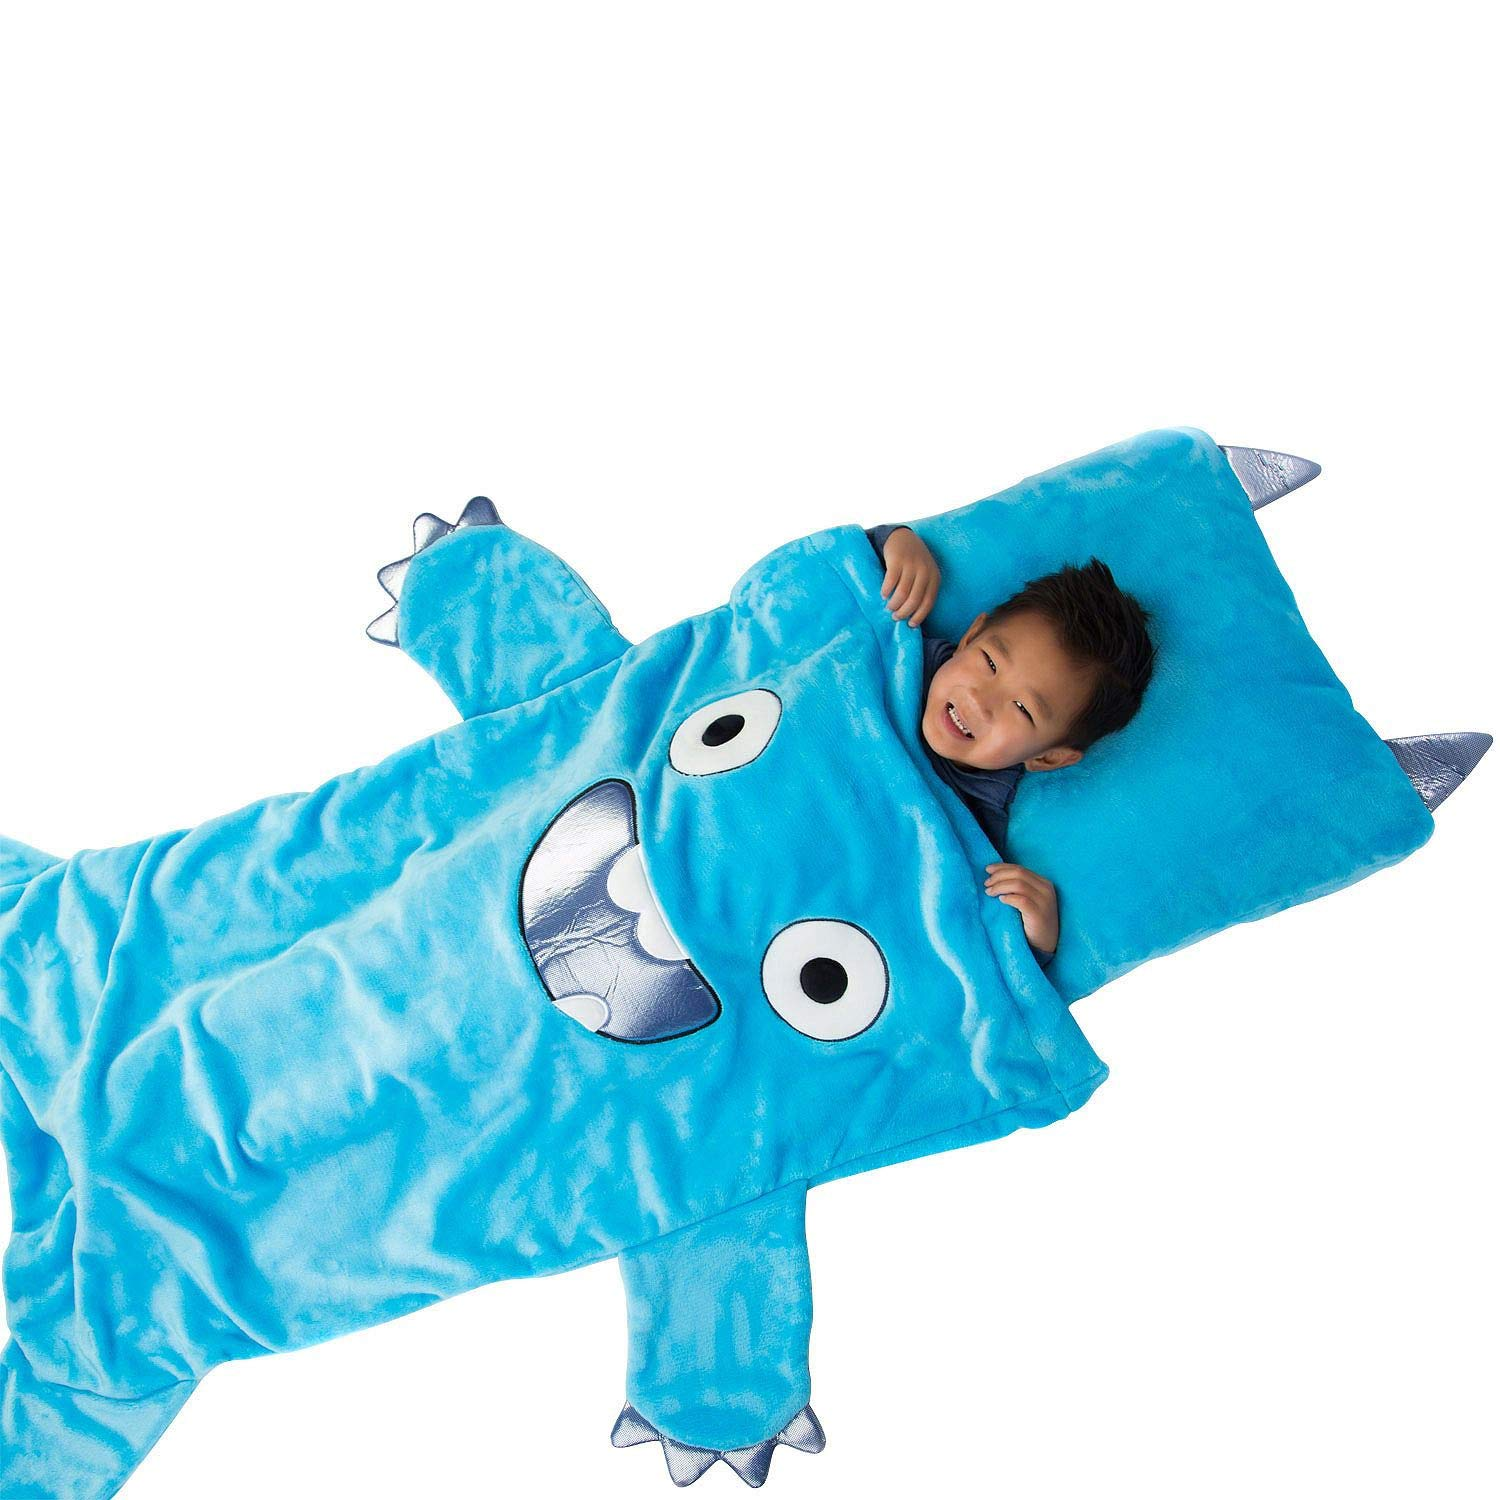 Kids Plush Sleeping Bag with Pillow Members Mark Dog